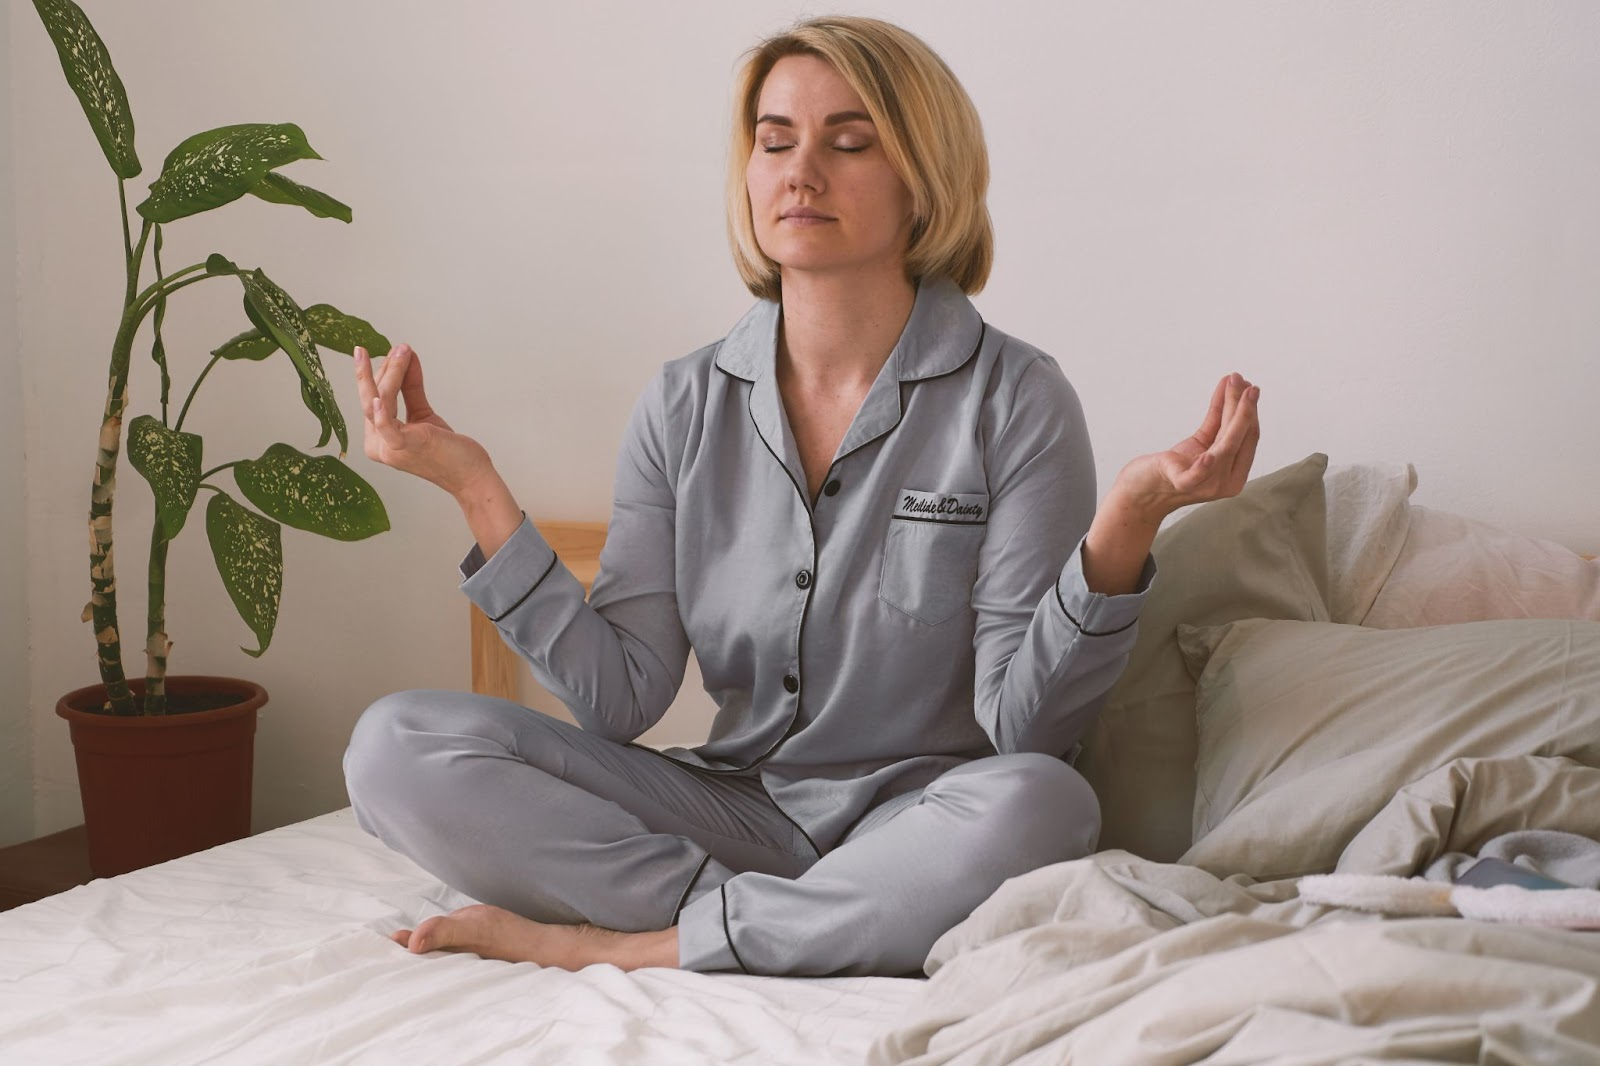 Yoga stretches you can do in bed.